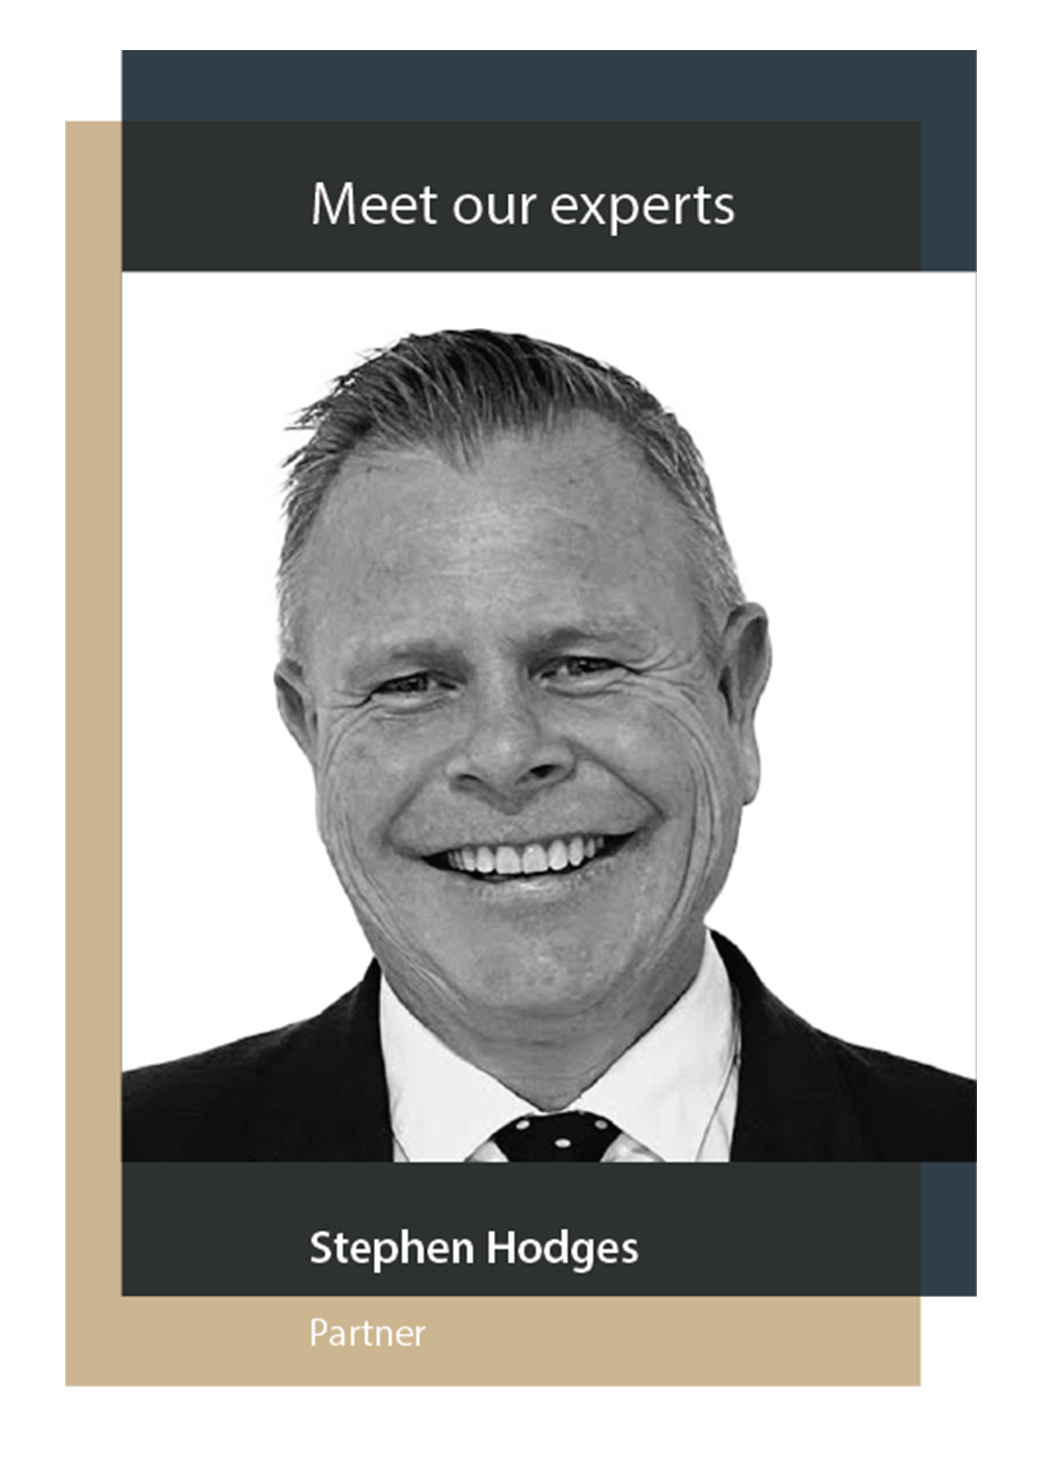 meet our experts-stephen